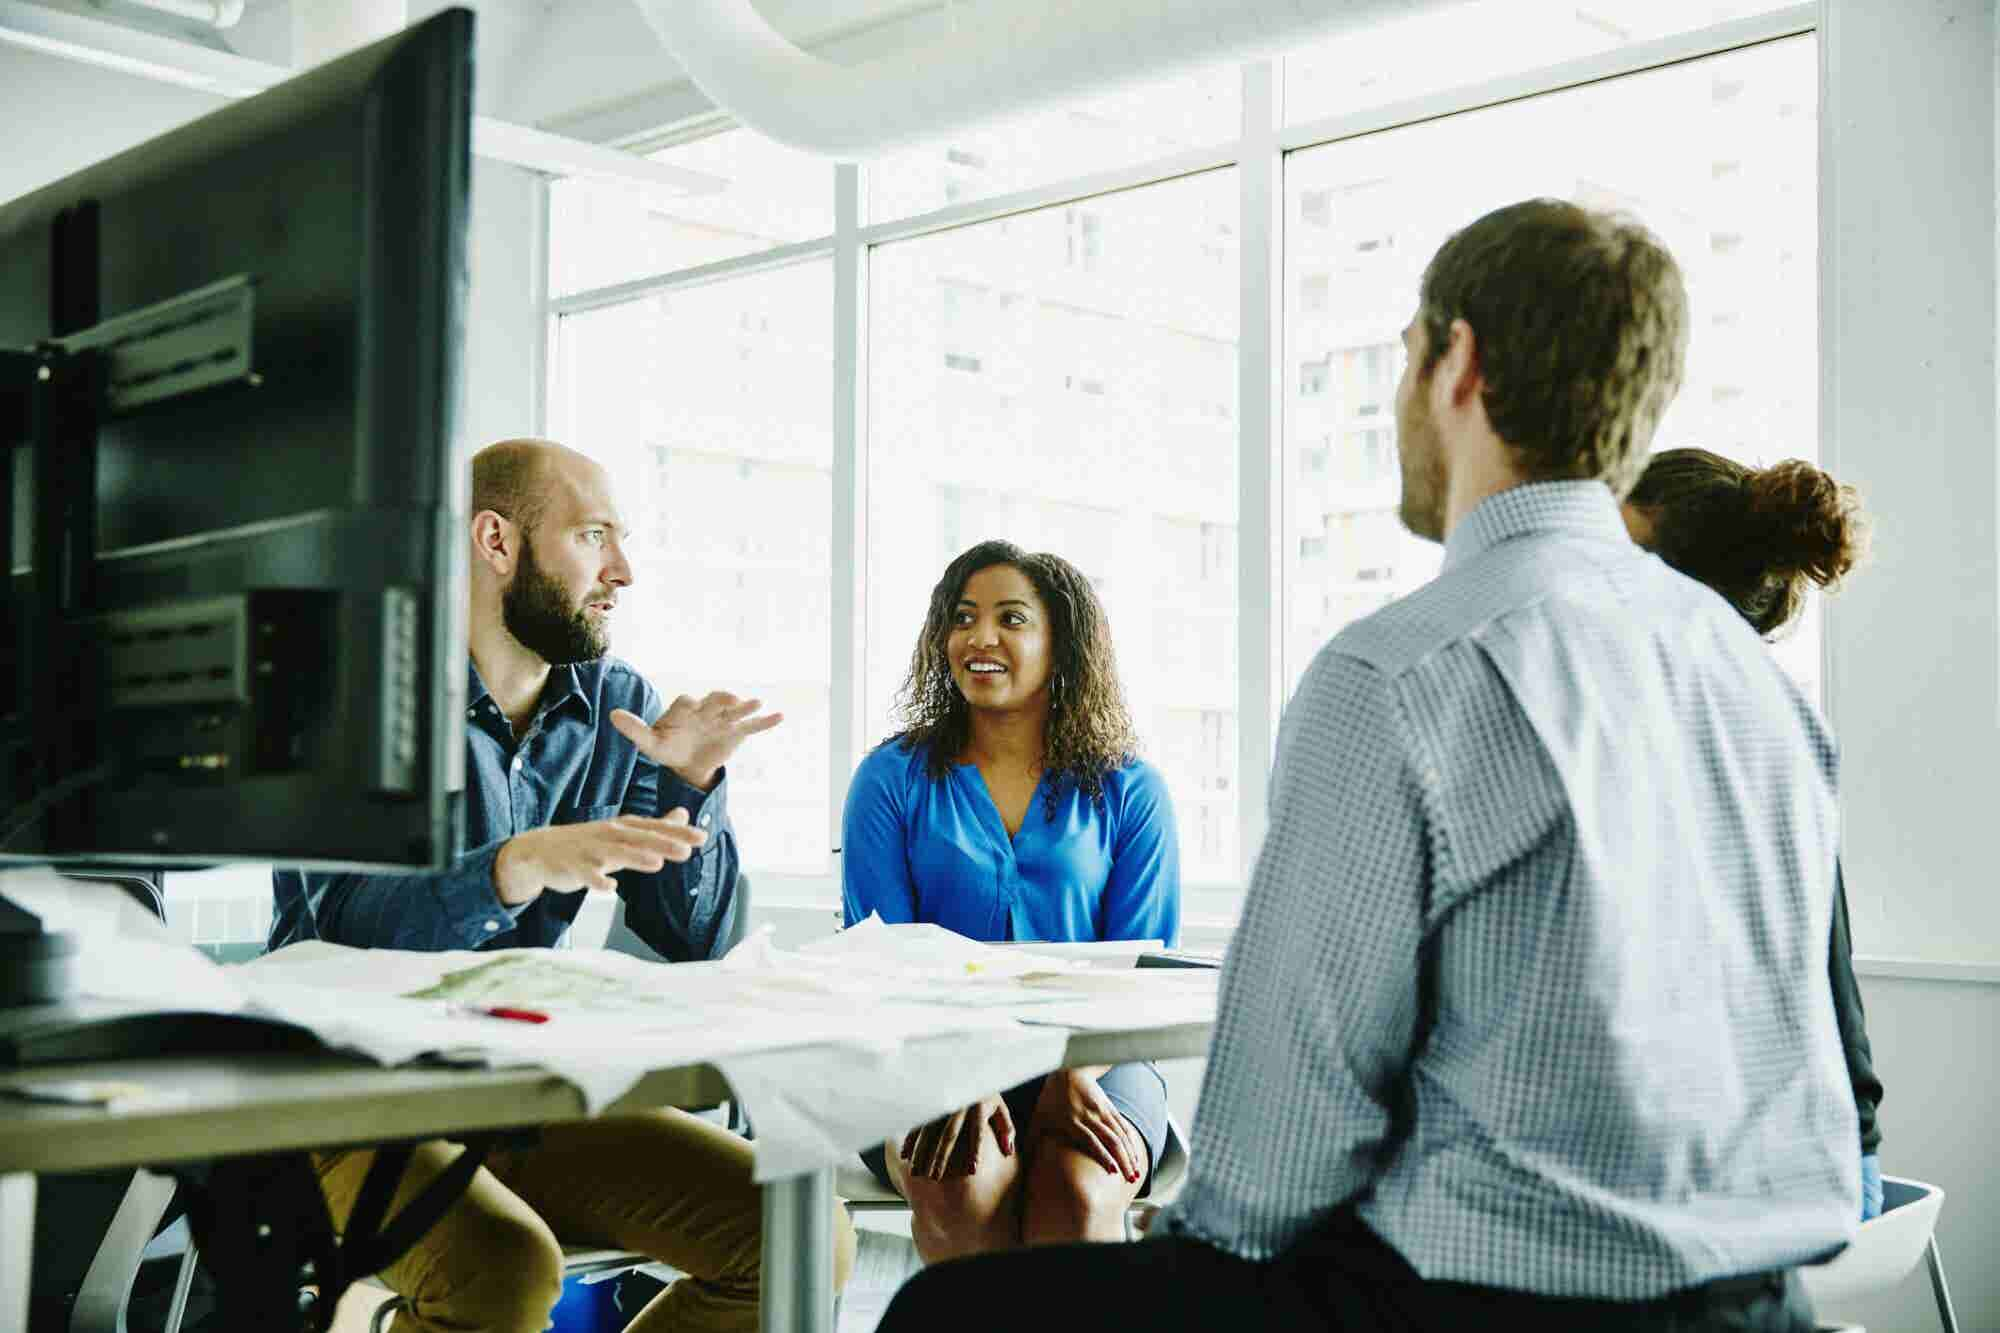 4 Daily Leadership Habits That Most Benefit Your Team